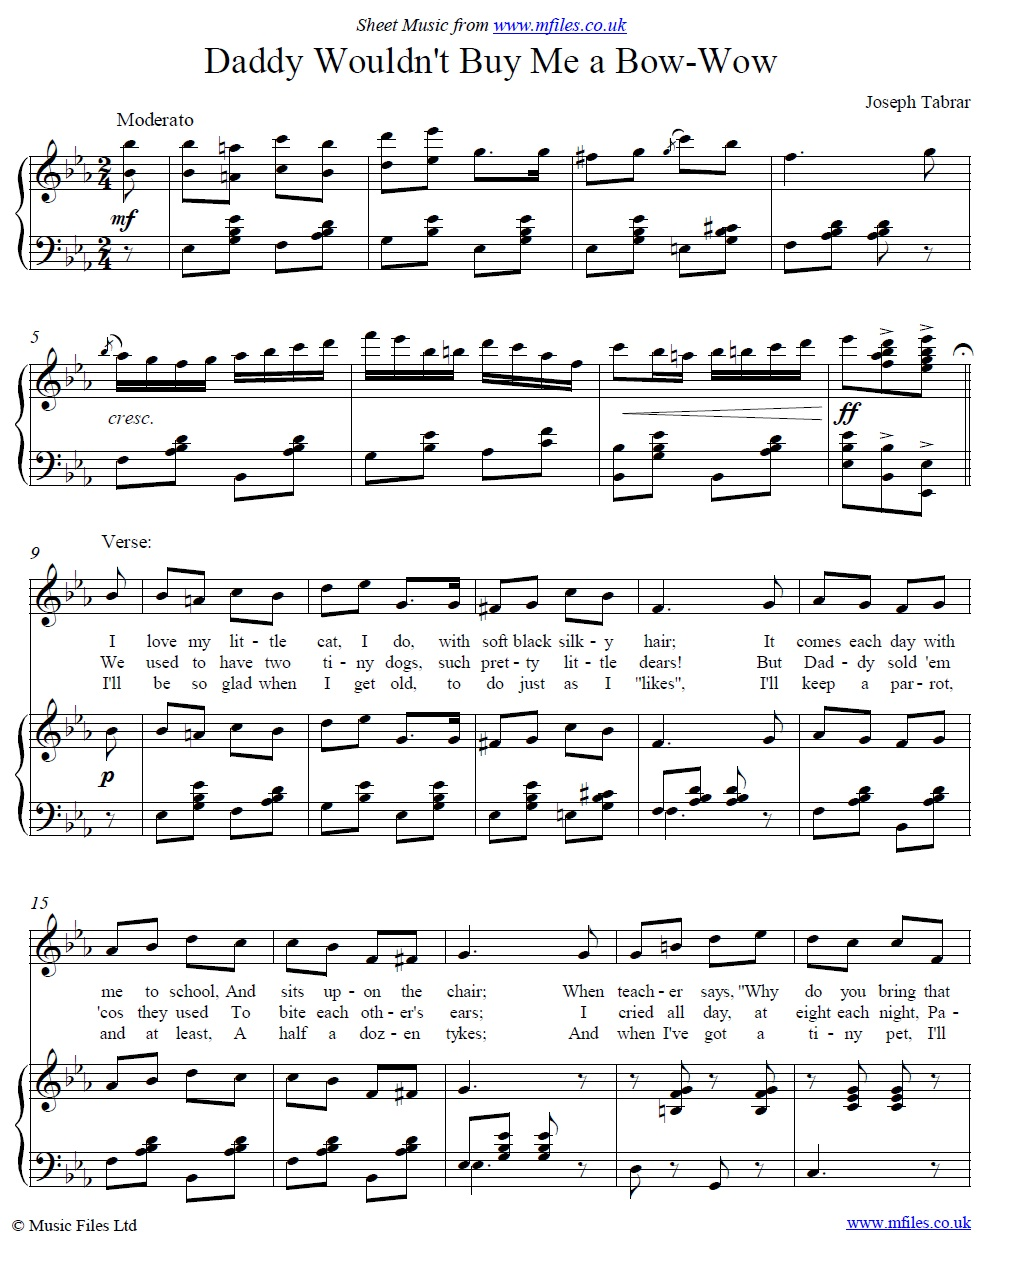 Daddy Wouldn't Buy Me a Bow-wow : a music hall song - piano/vocal